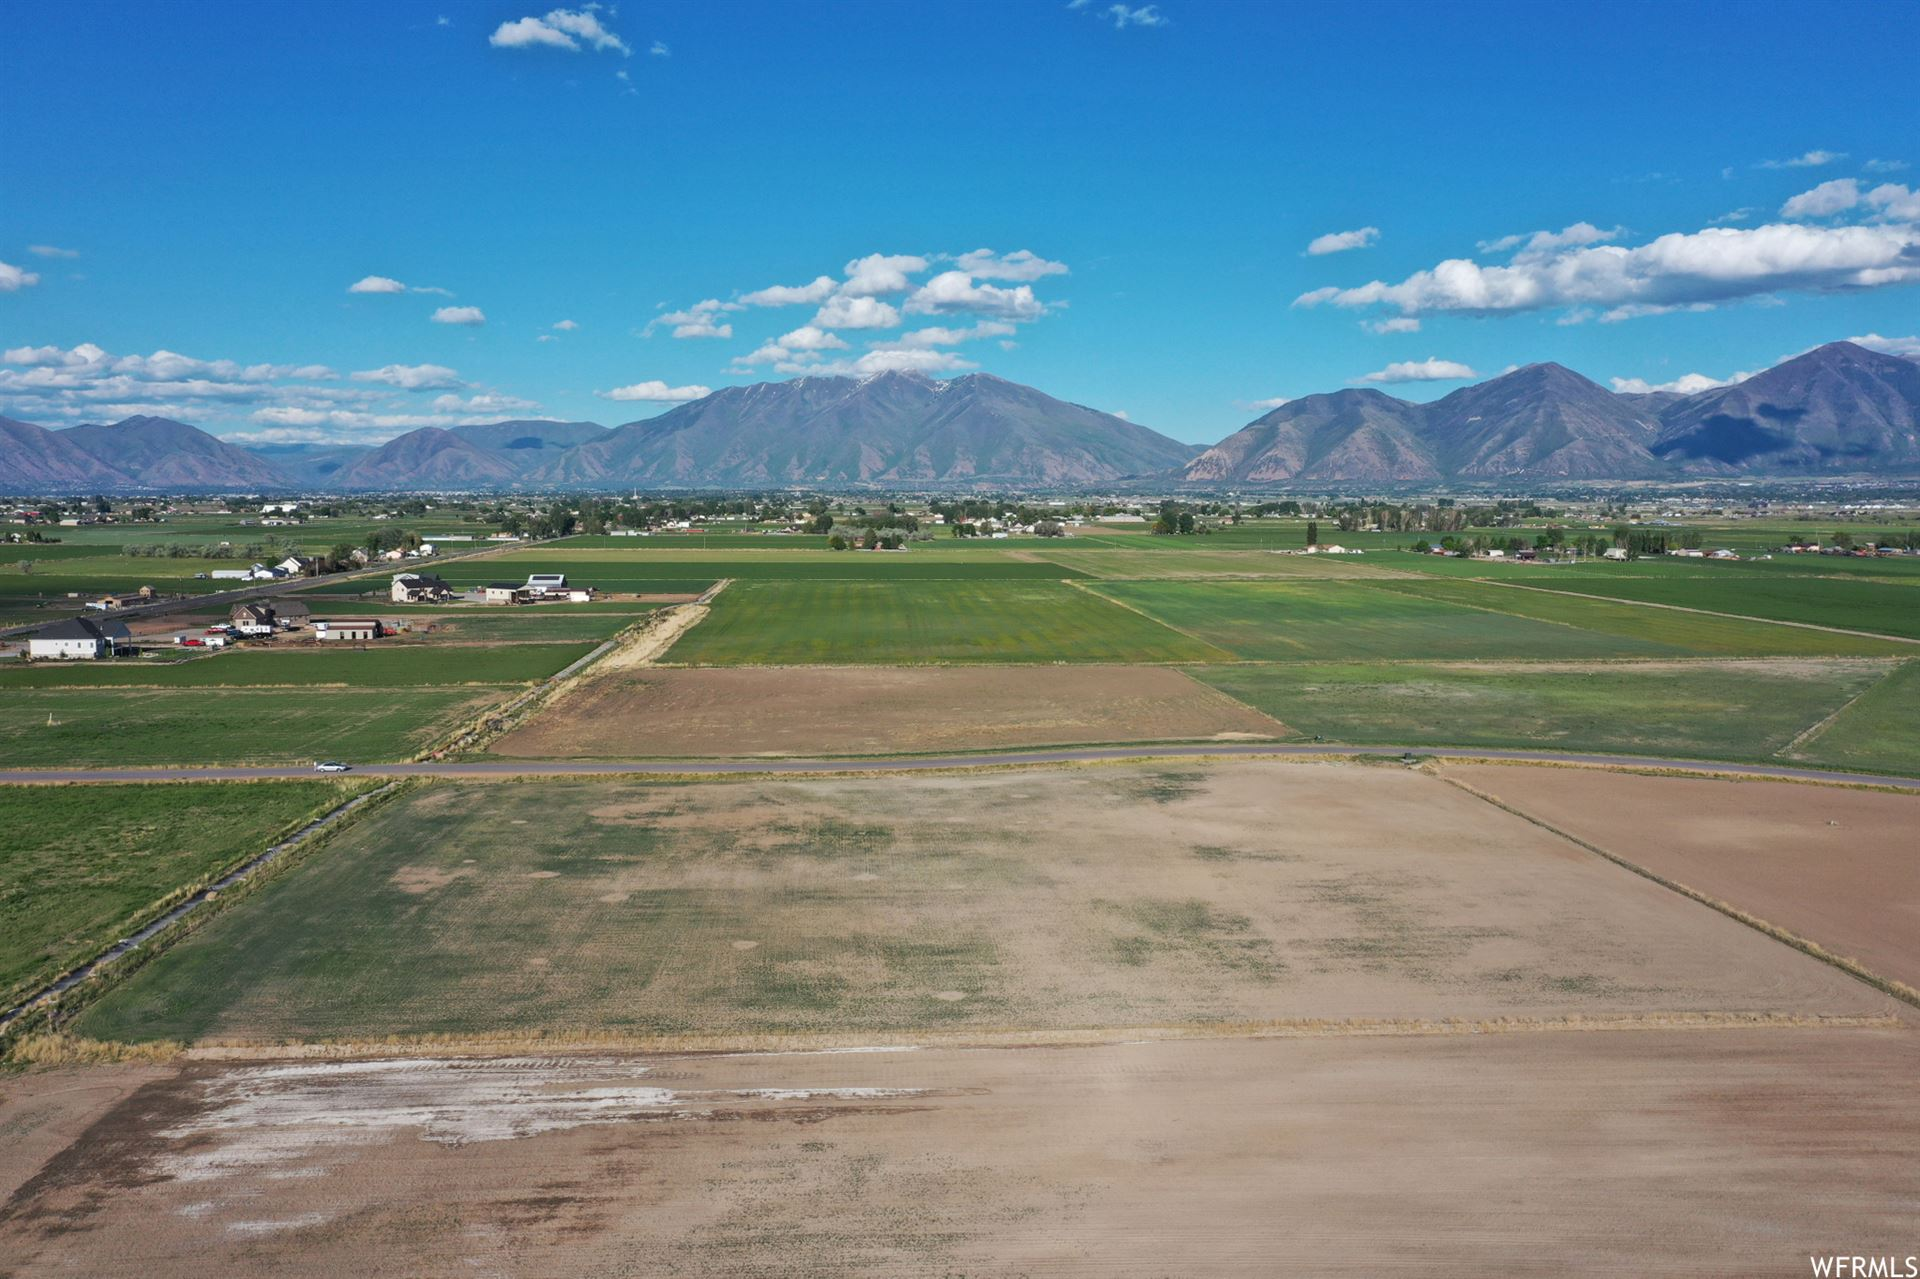 Photo of 7400 S MIRACLE W RD #16, Spanish Fork, UT 84660 (MLS # 1756192)